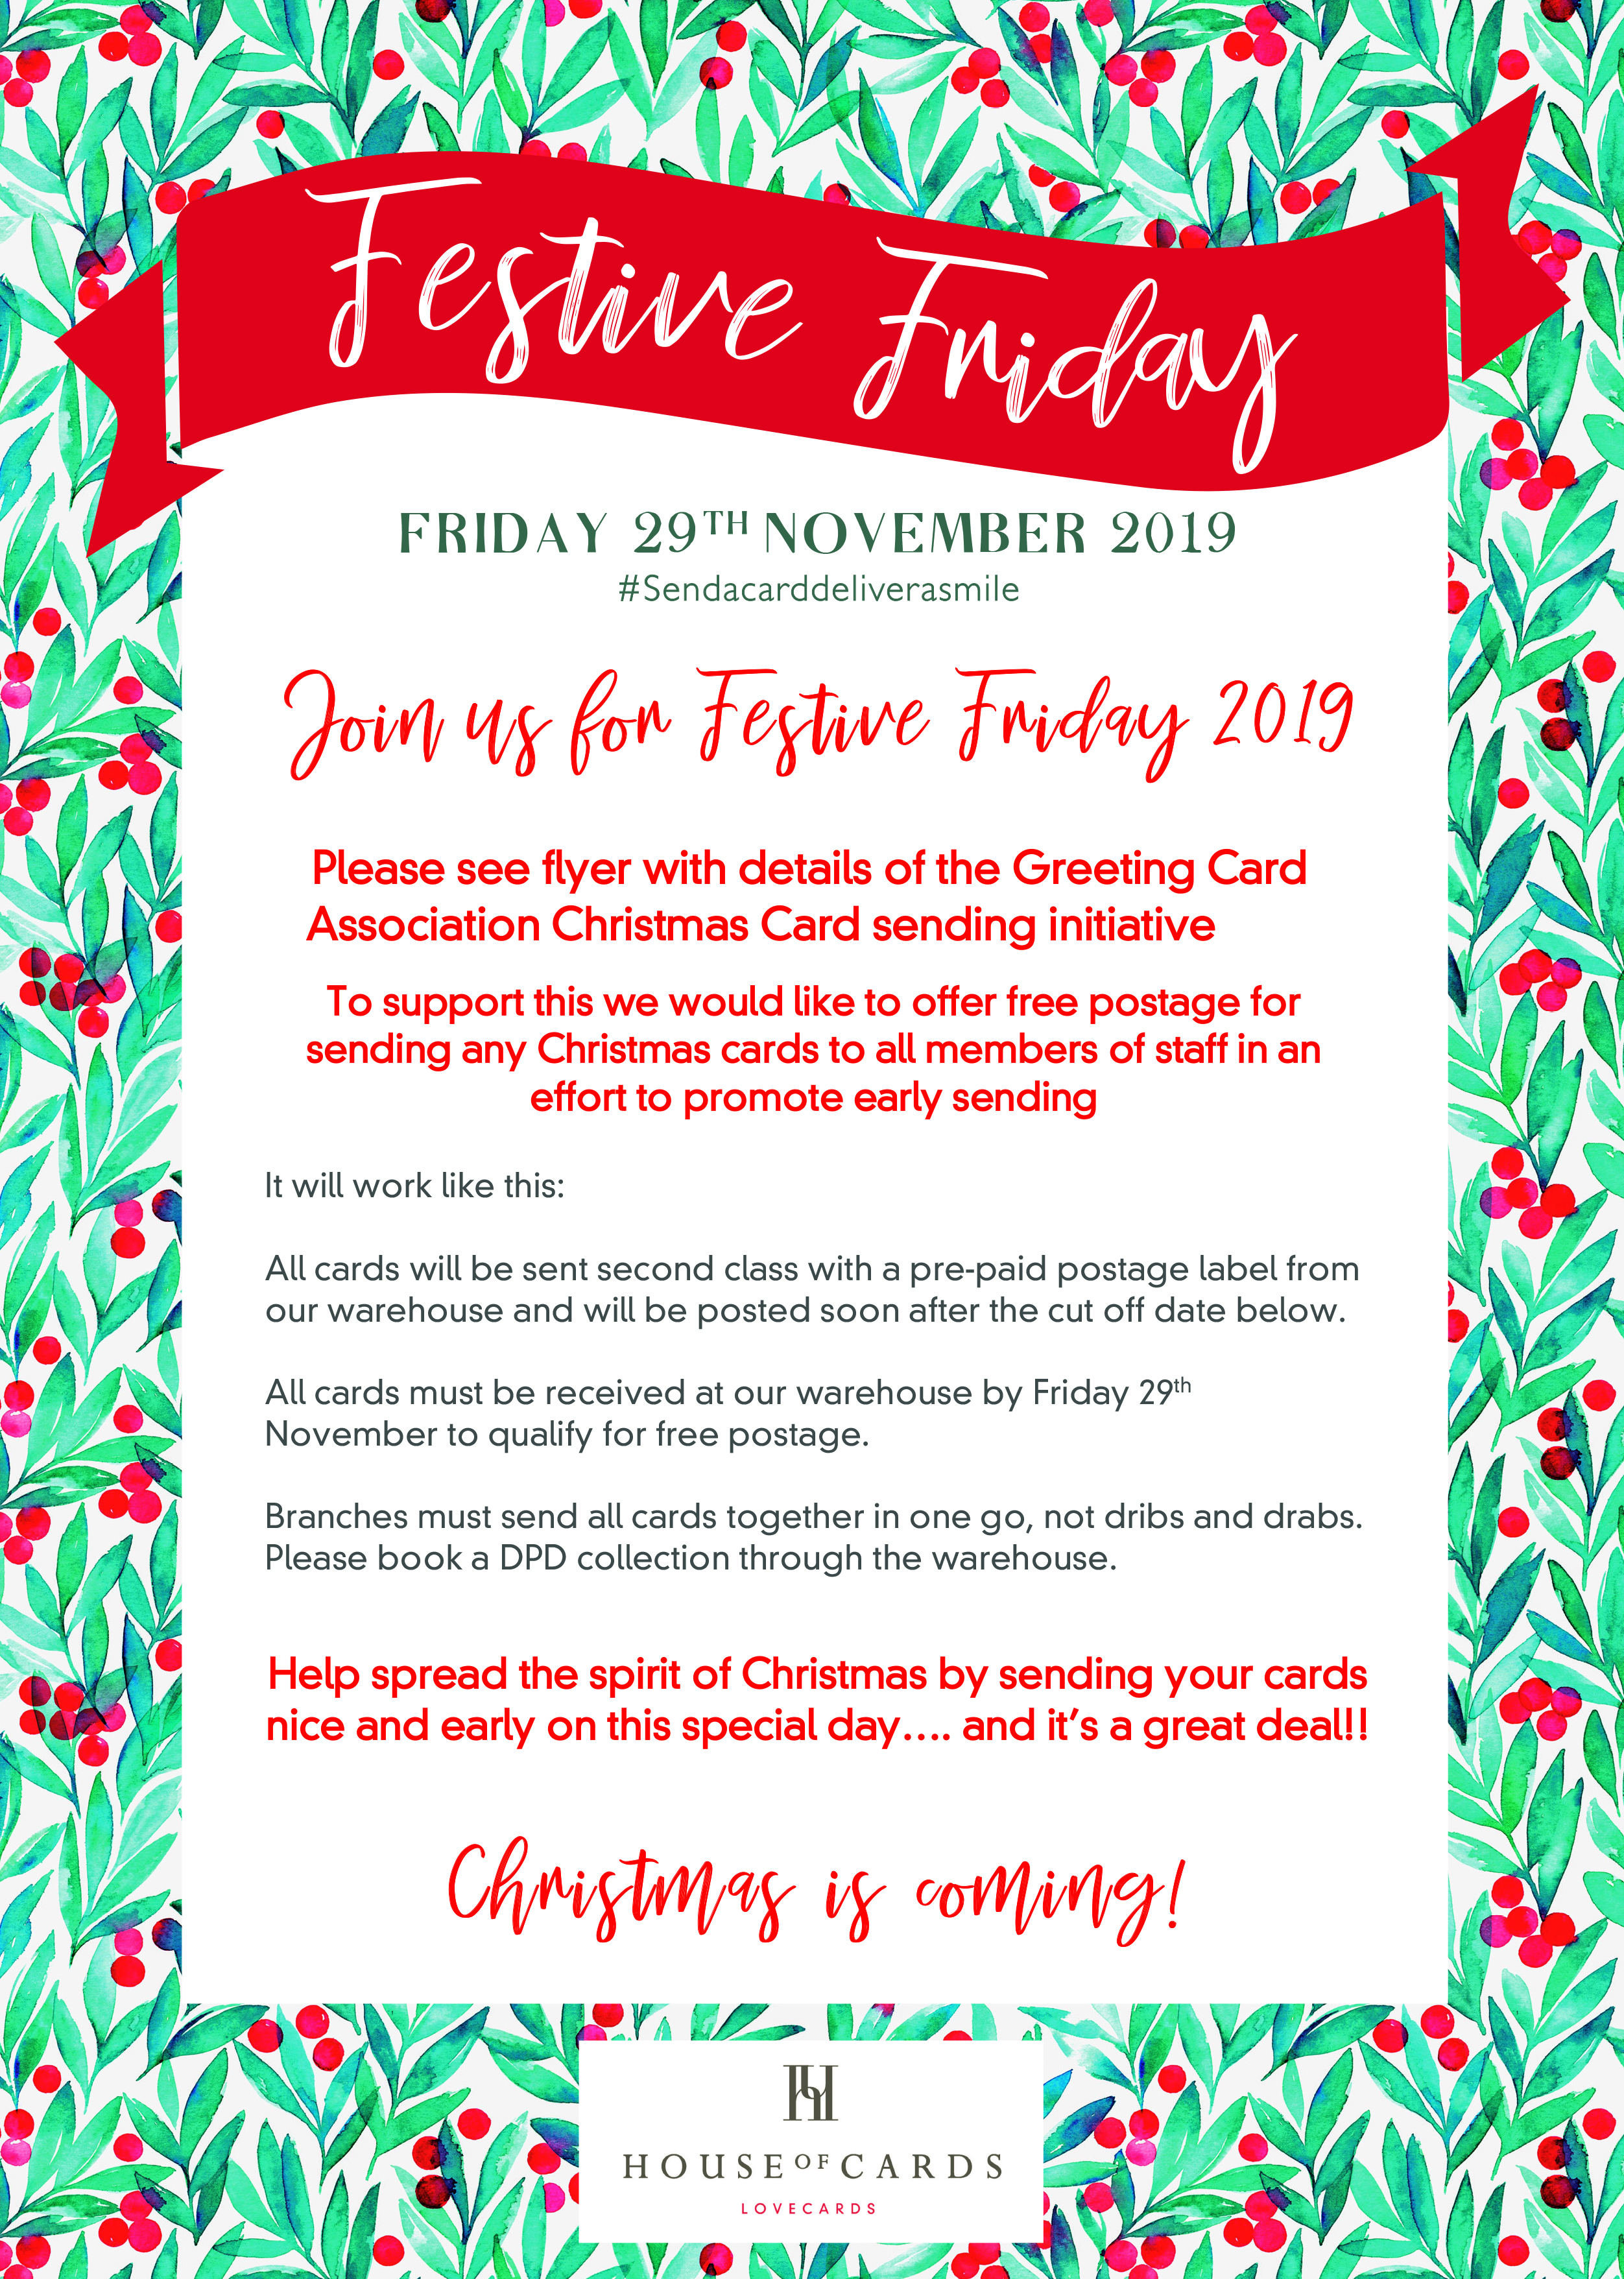 Above: House of Cards used the downloadable poster to tell the staff in its six stores and warehouse all about its plans for this year's Festive Friday.